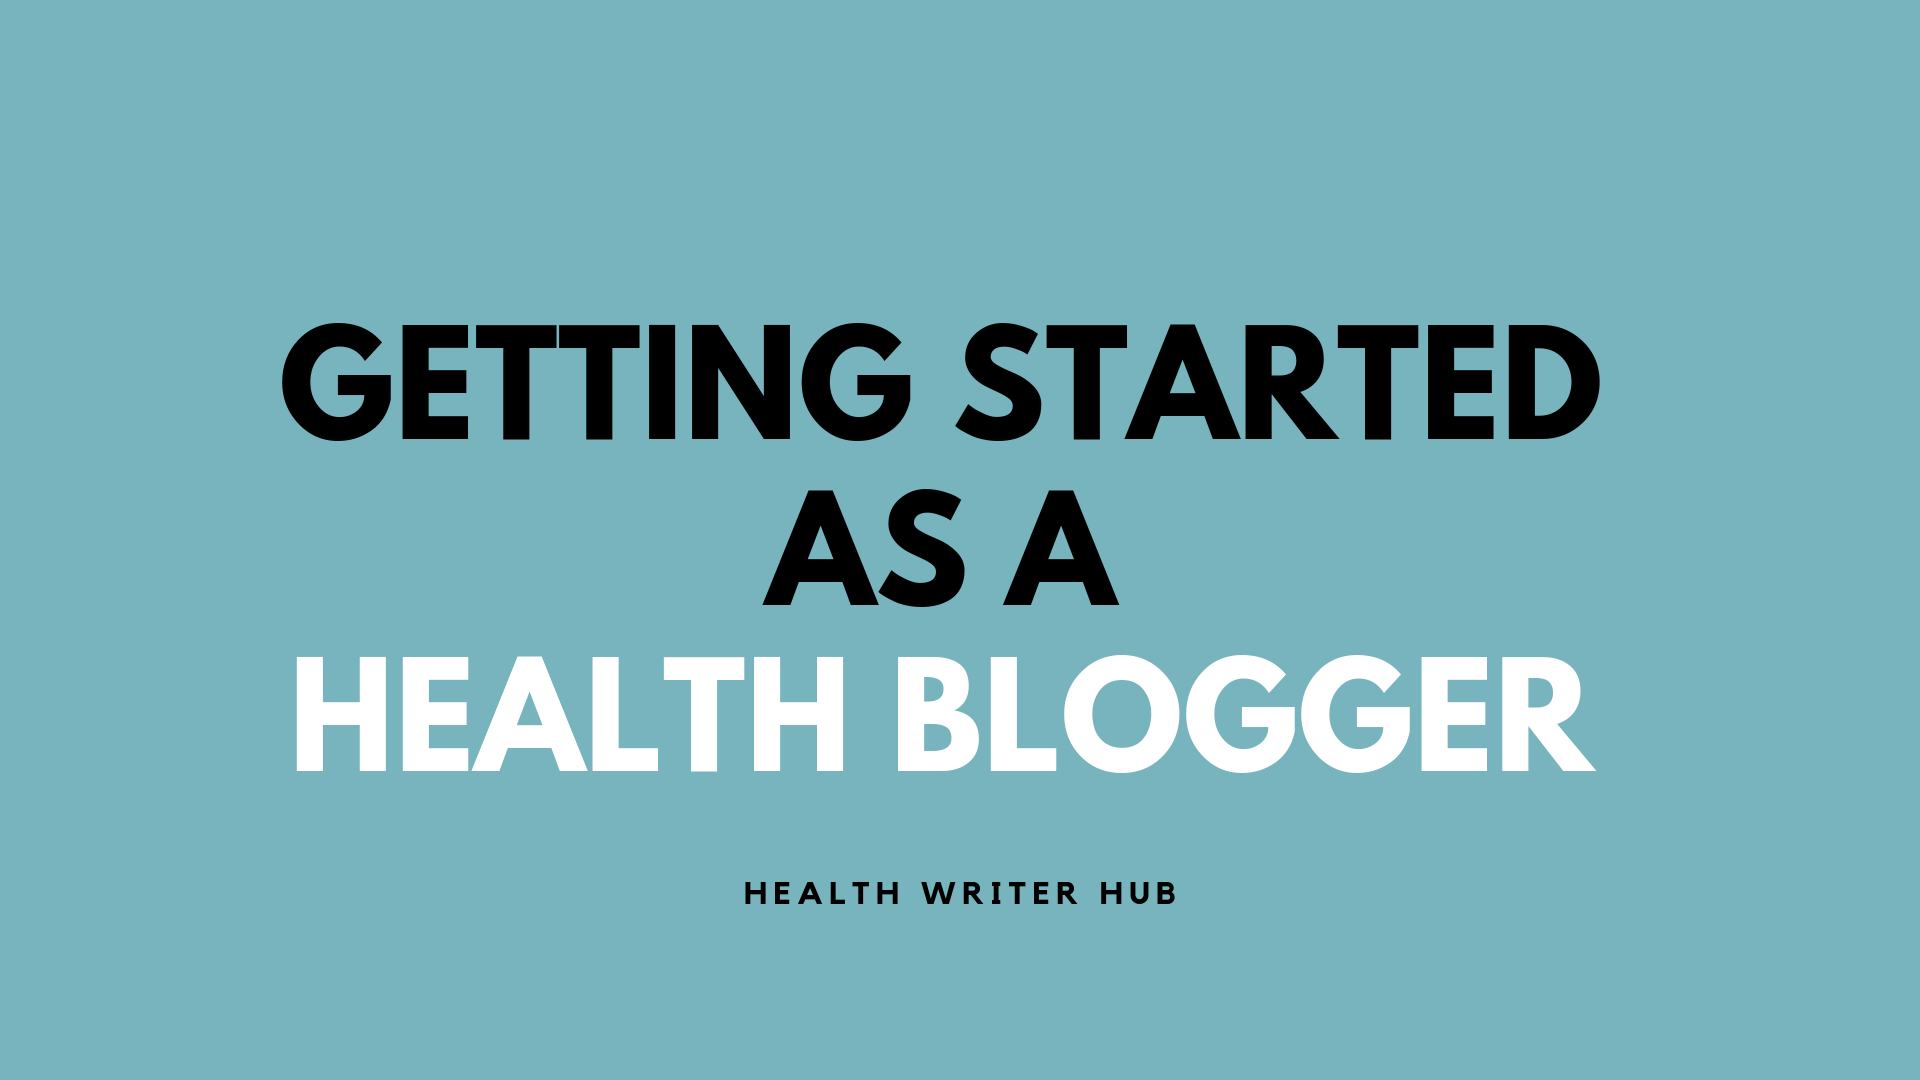 getting started as a health blogger